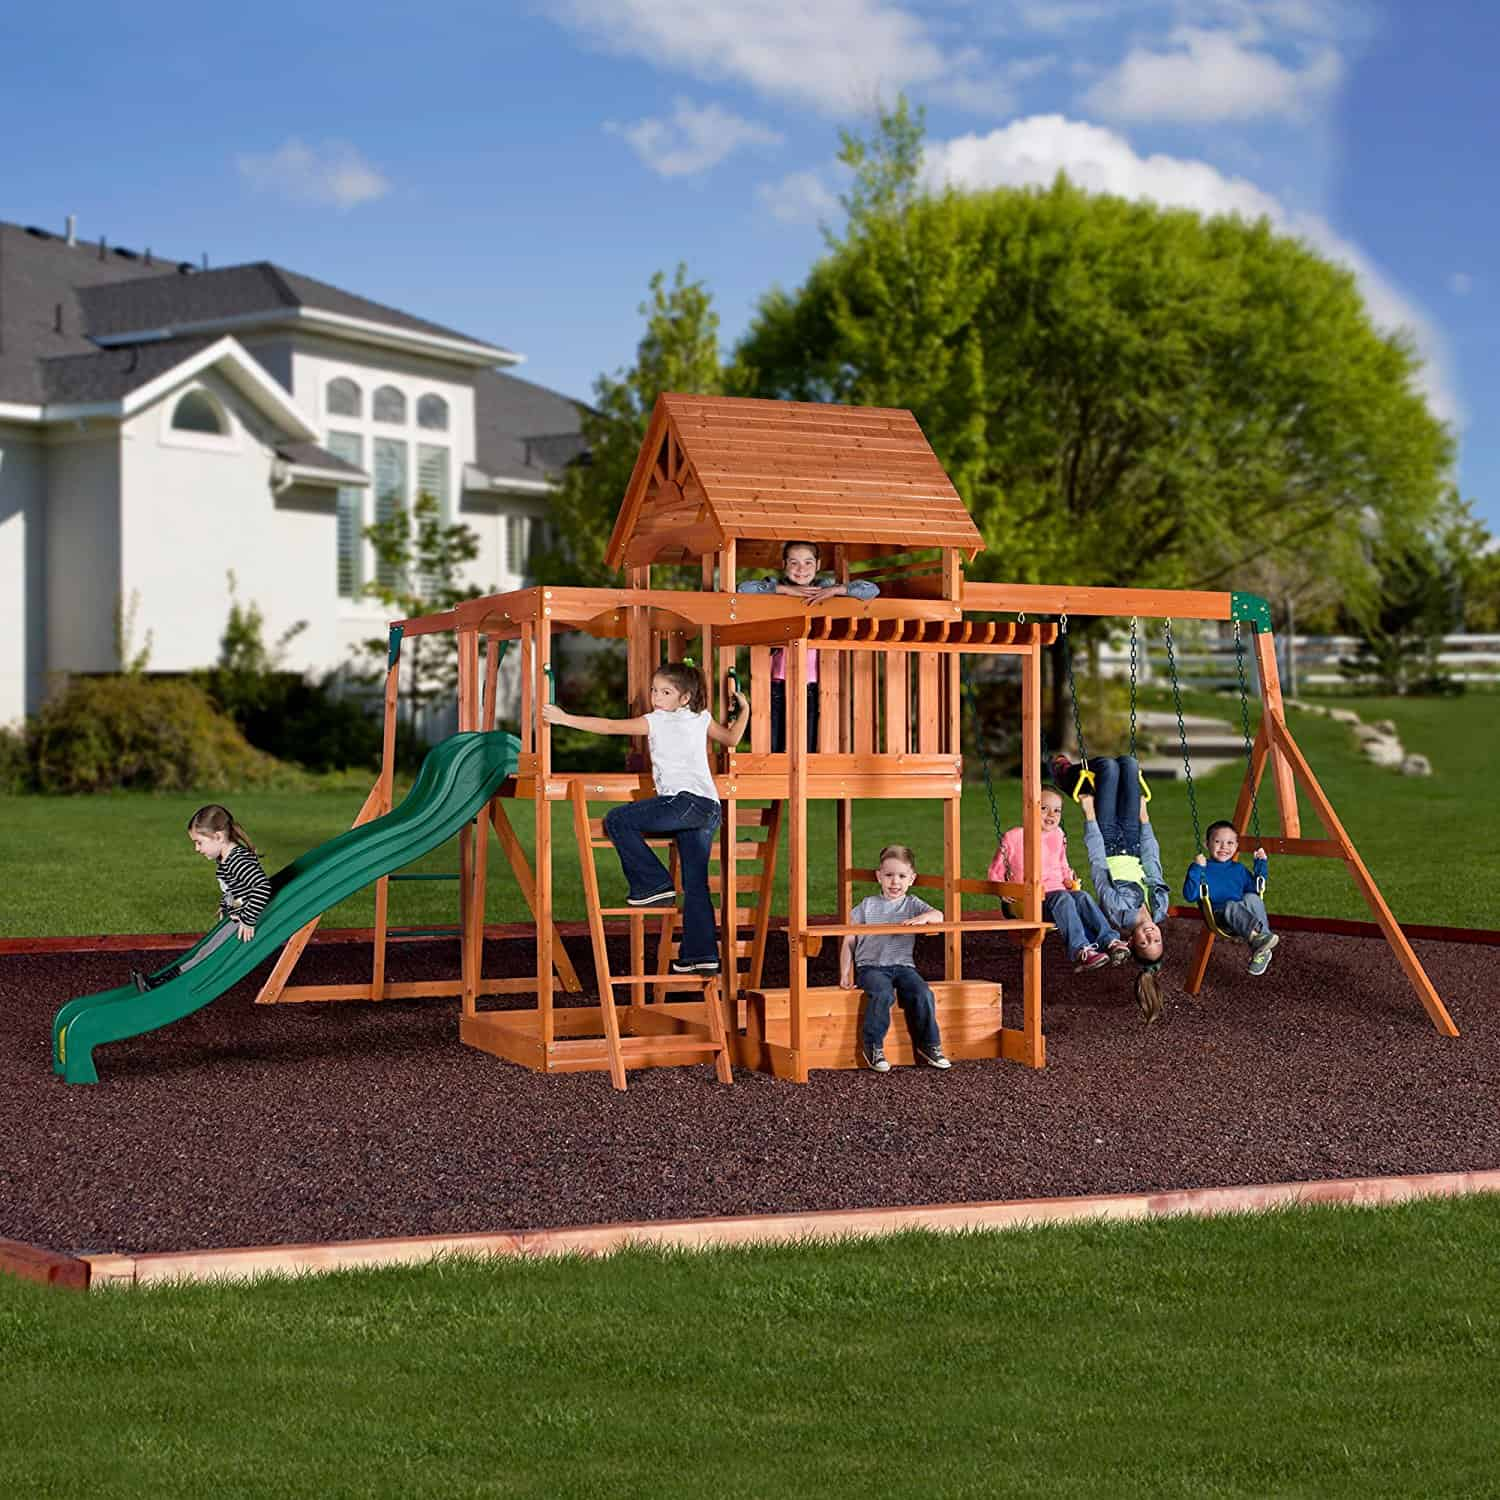 Large two story playhouse playground with slide, deck and swing set.